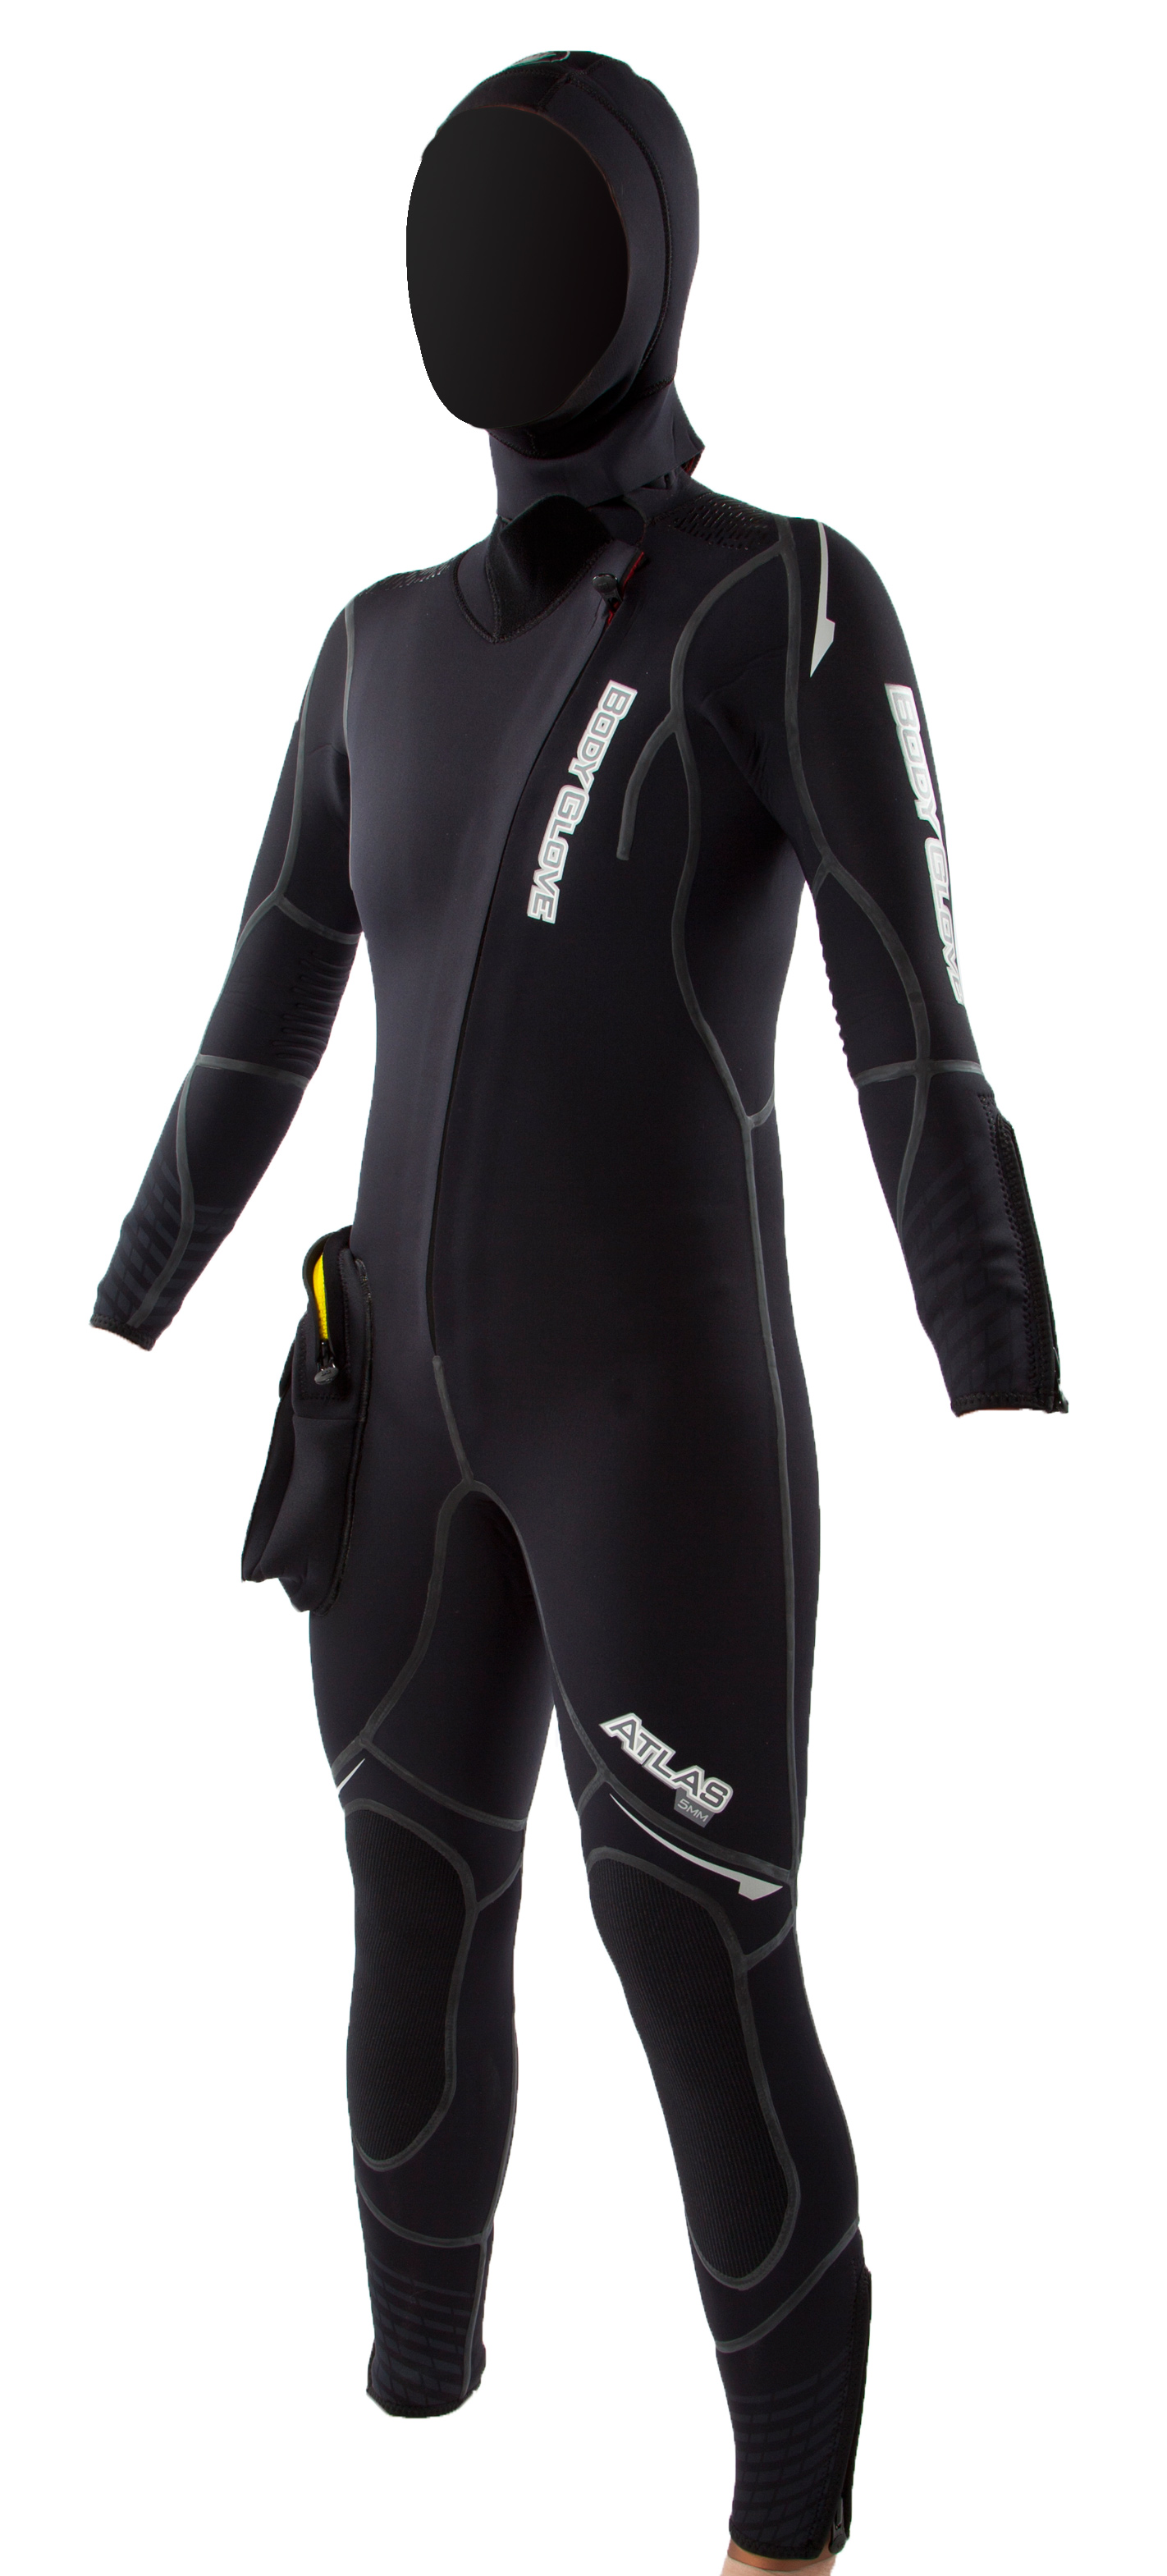 Body Glove Women's Atlas Front Zip Dive Suit 5mm With Hood - Black